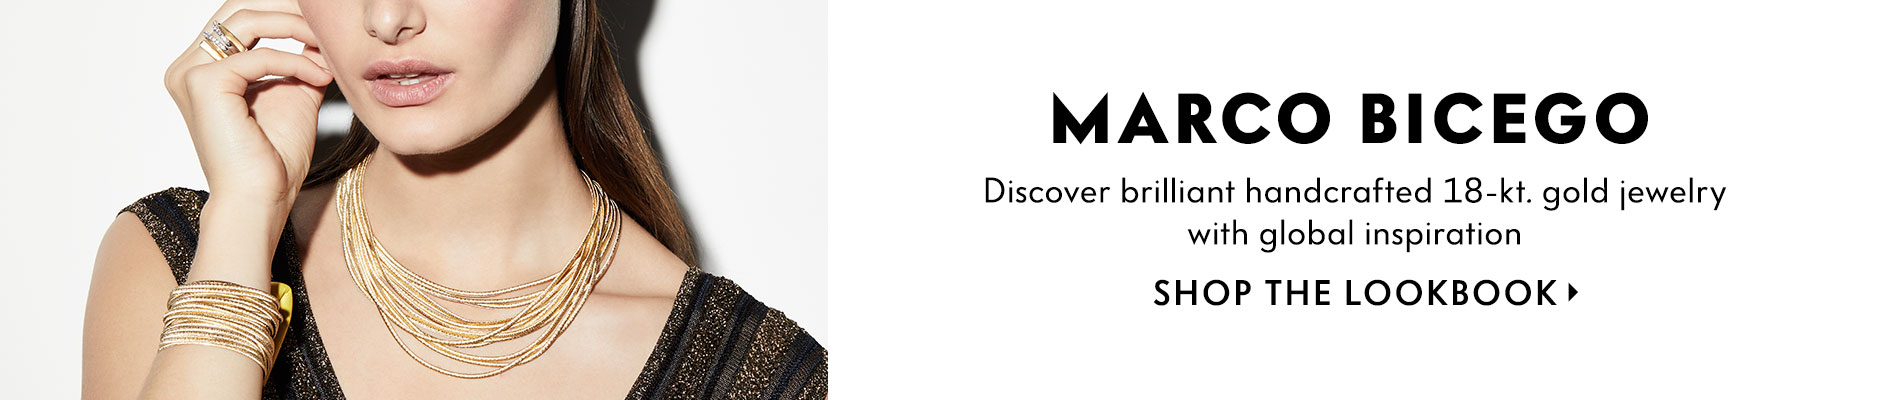 Marco Bicego Lookbook